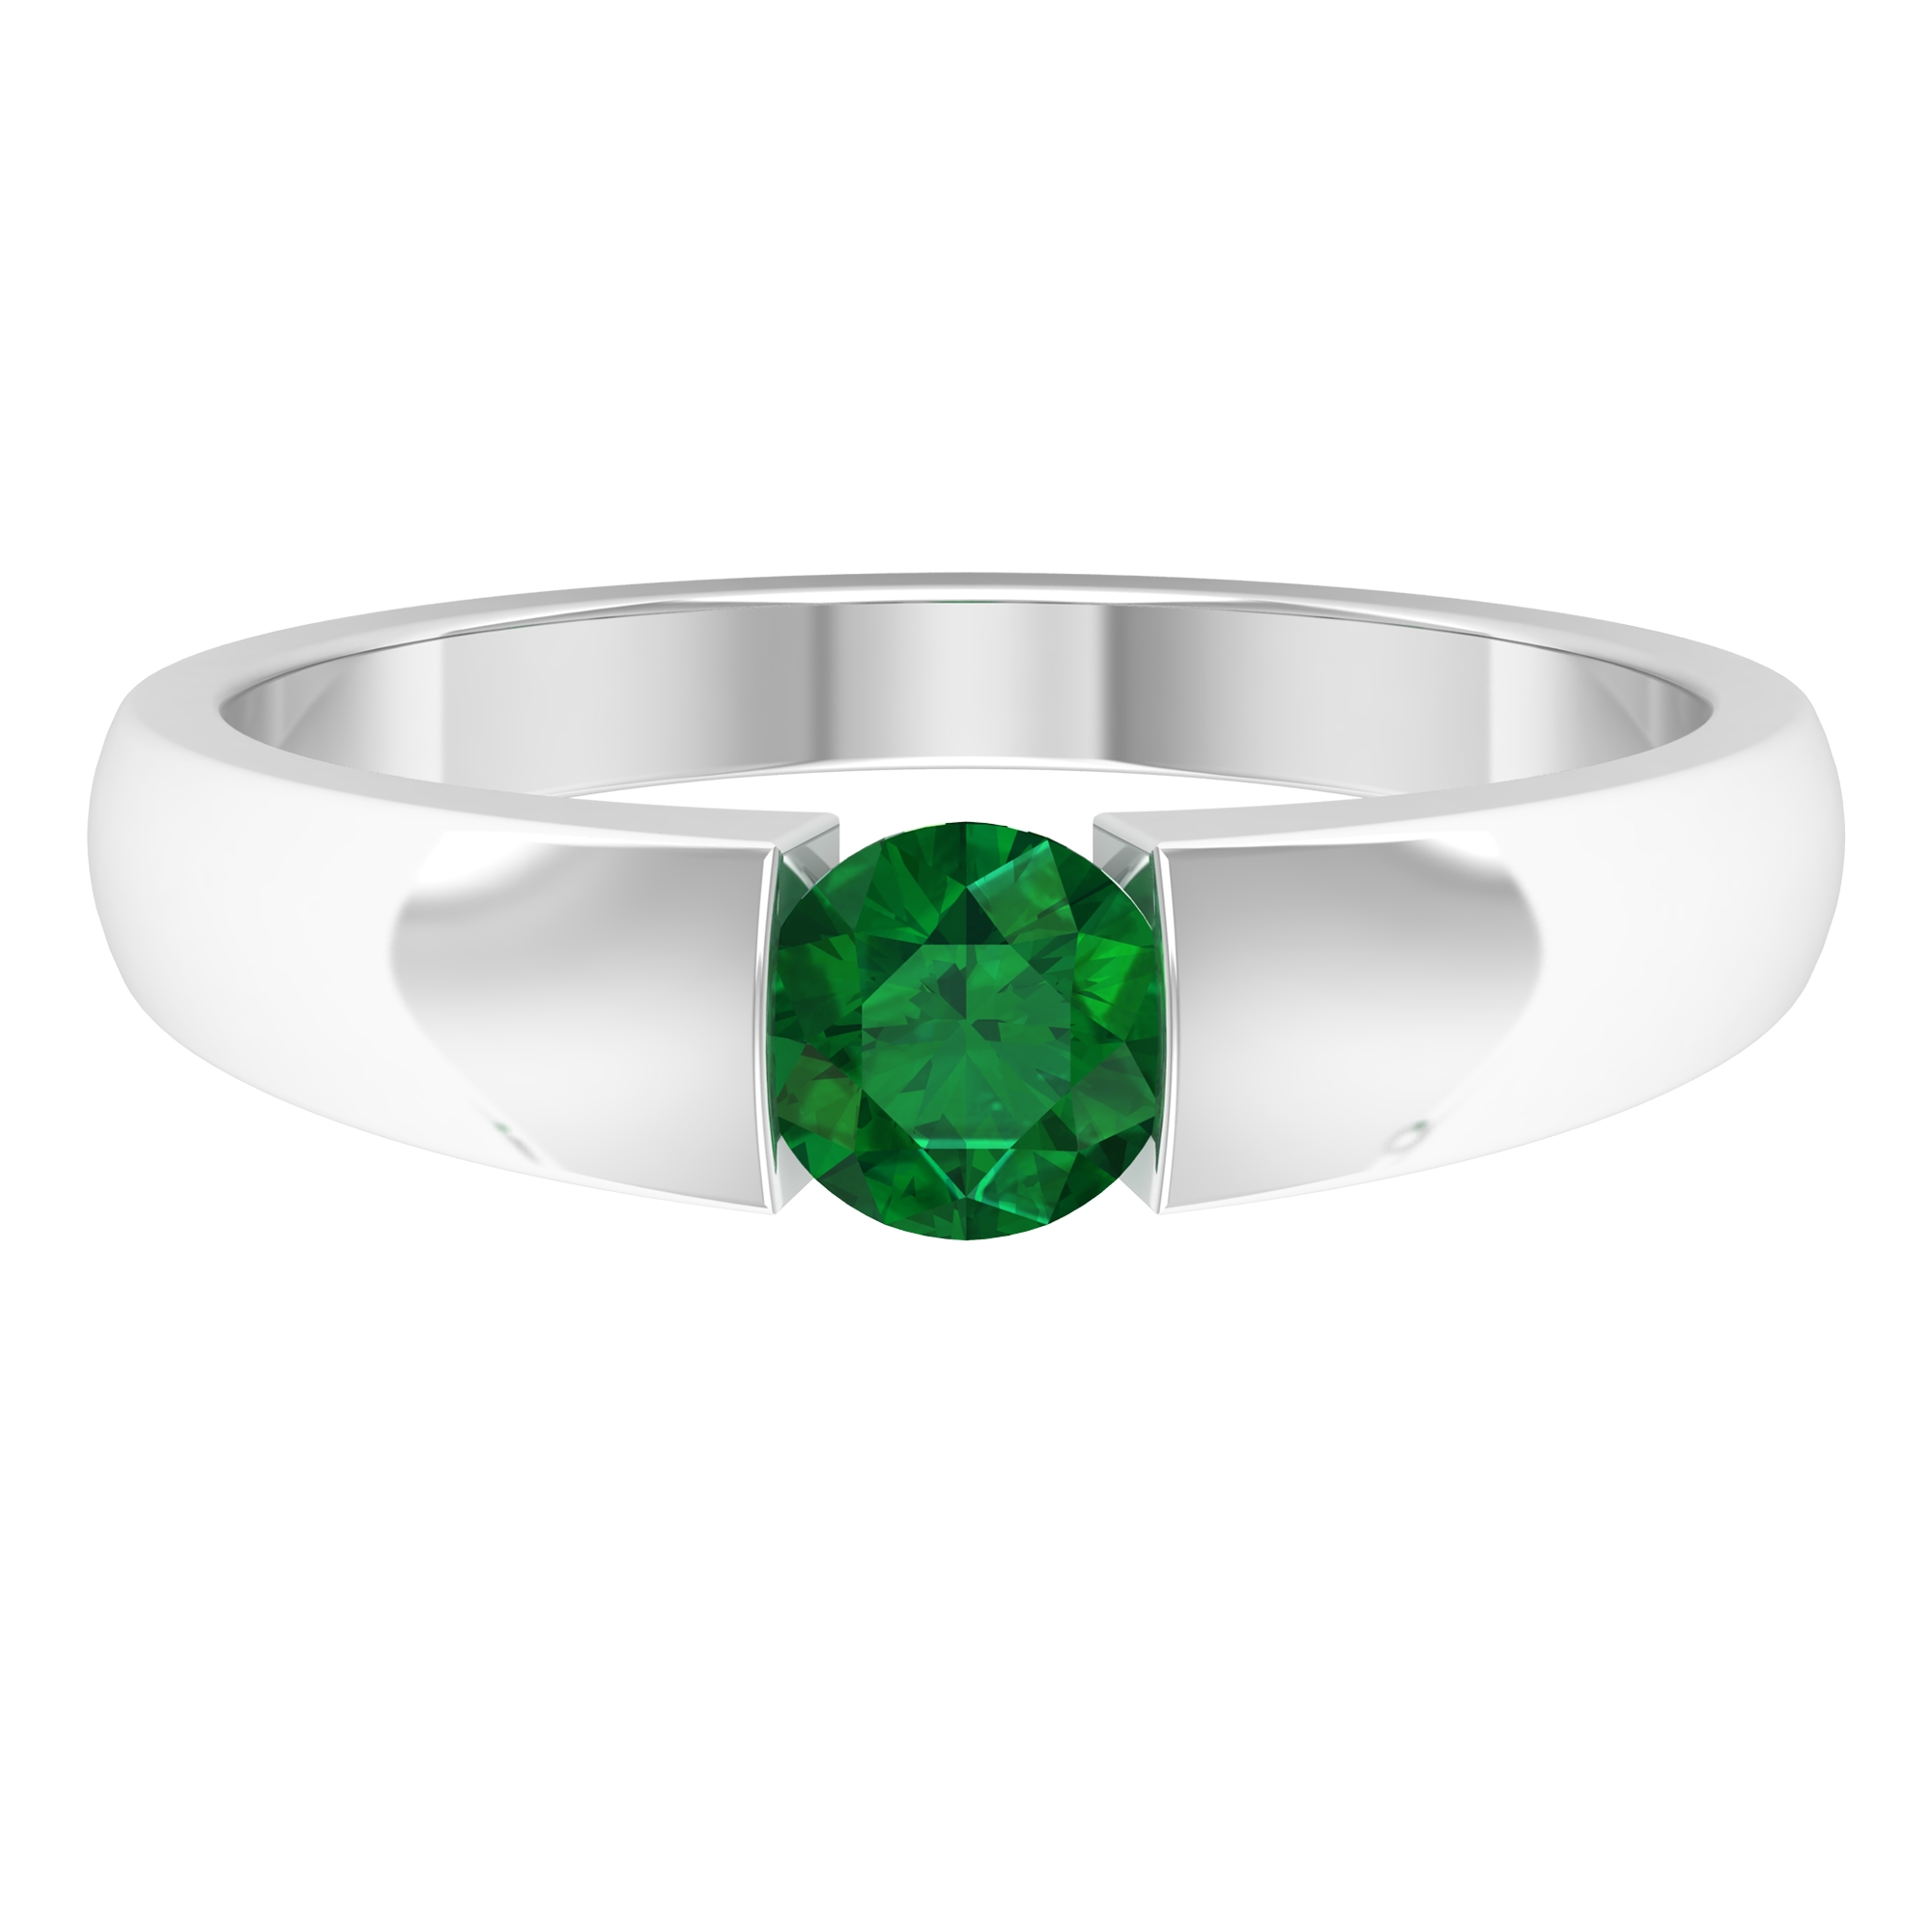 5 MM Round Emerald Solitaire Ring in Tension Mount Setting